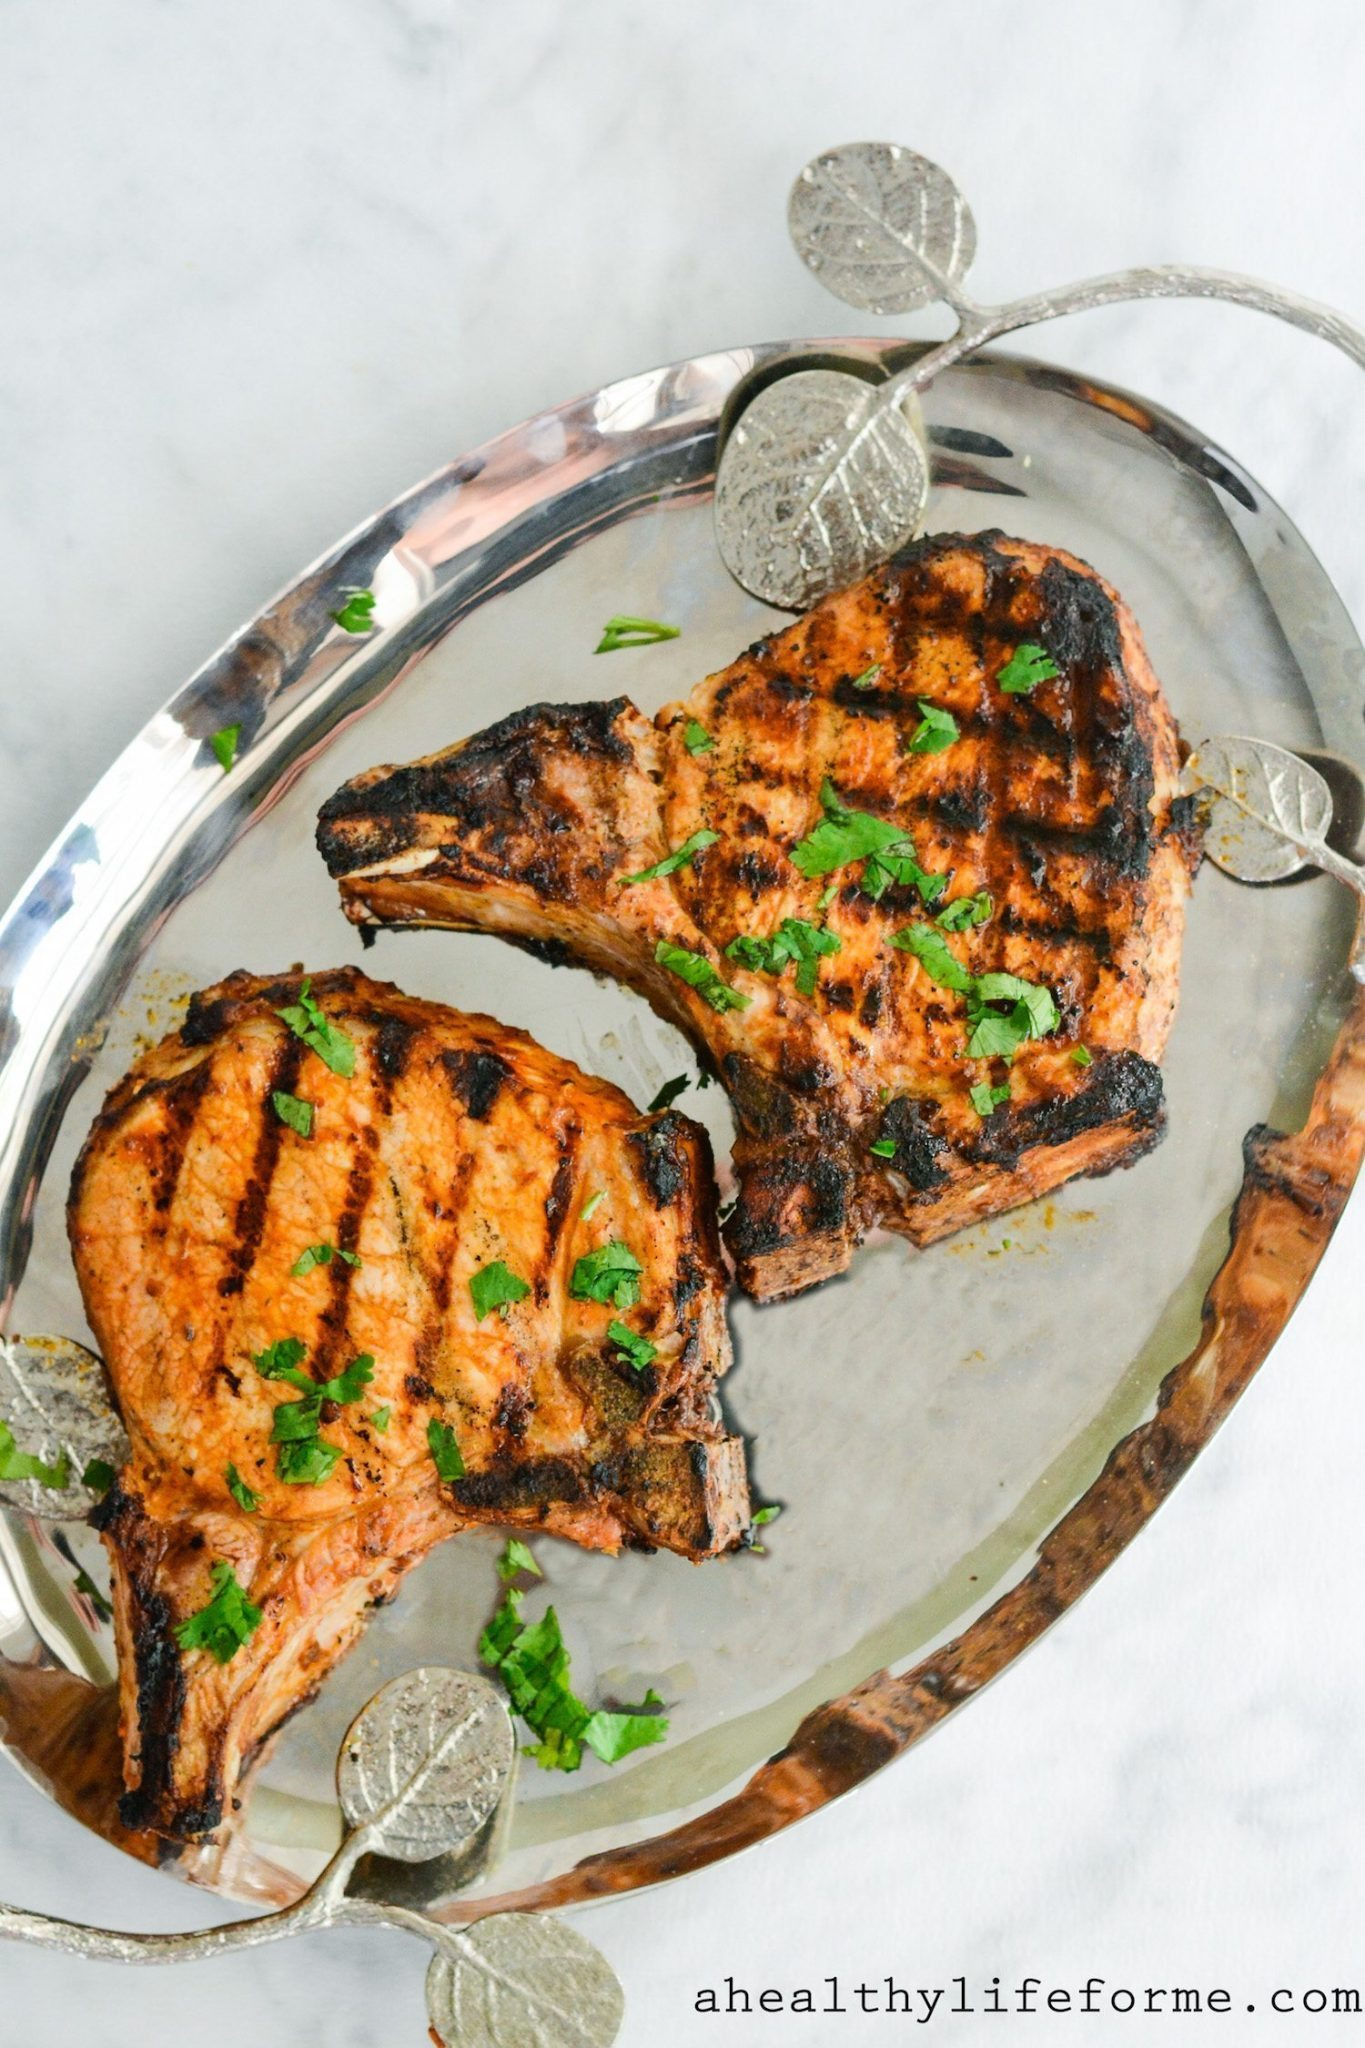 Chipotle Lime Marinated Grilled Pork Chops Are Simple Juicy Perfect Pork Chops With A